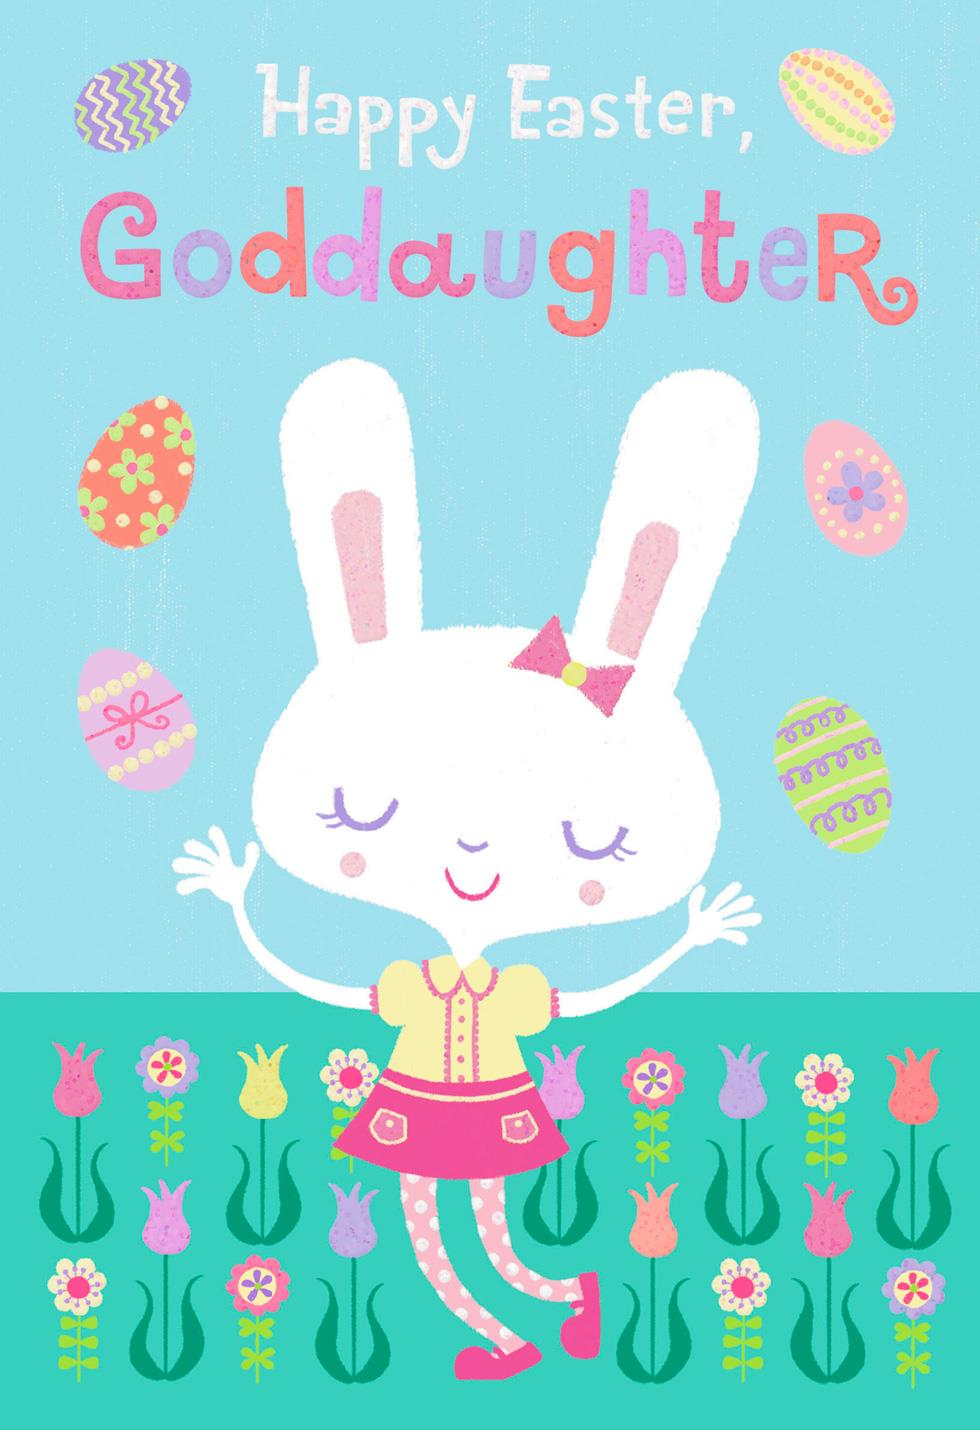 Goddaughter Flowers And Eggs Easter Card Greeting Cards